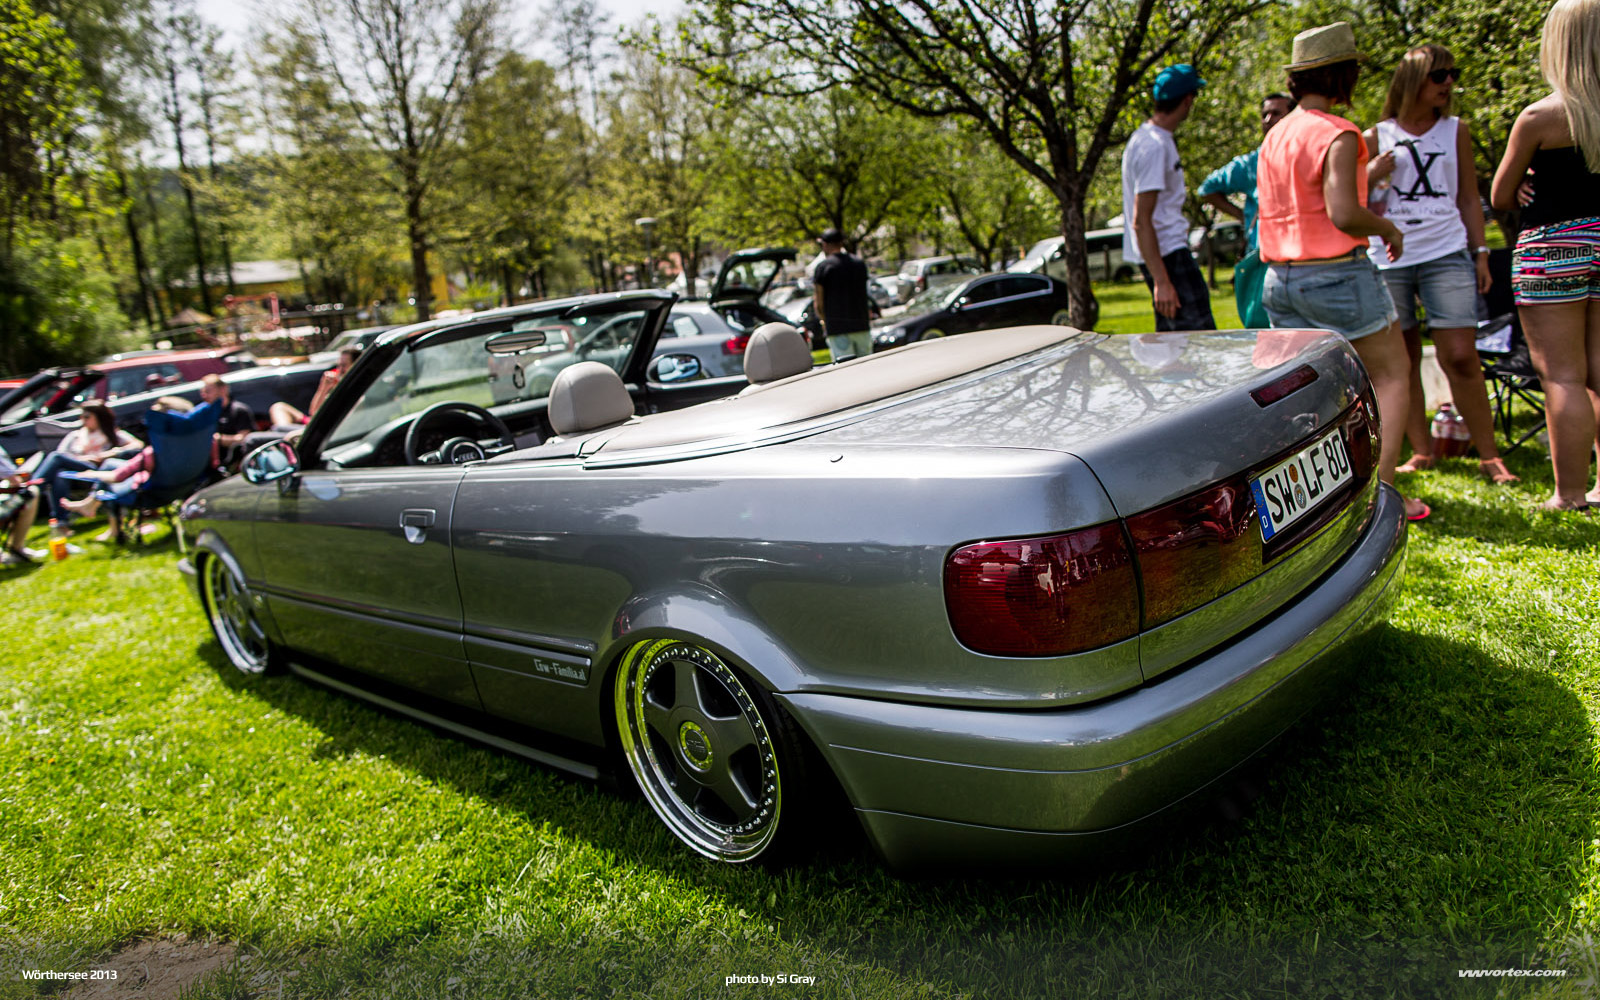 worthersee-2013-gallery-si-gray-169